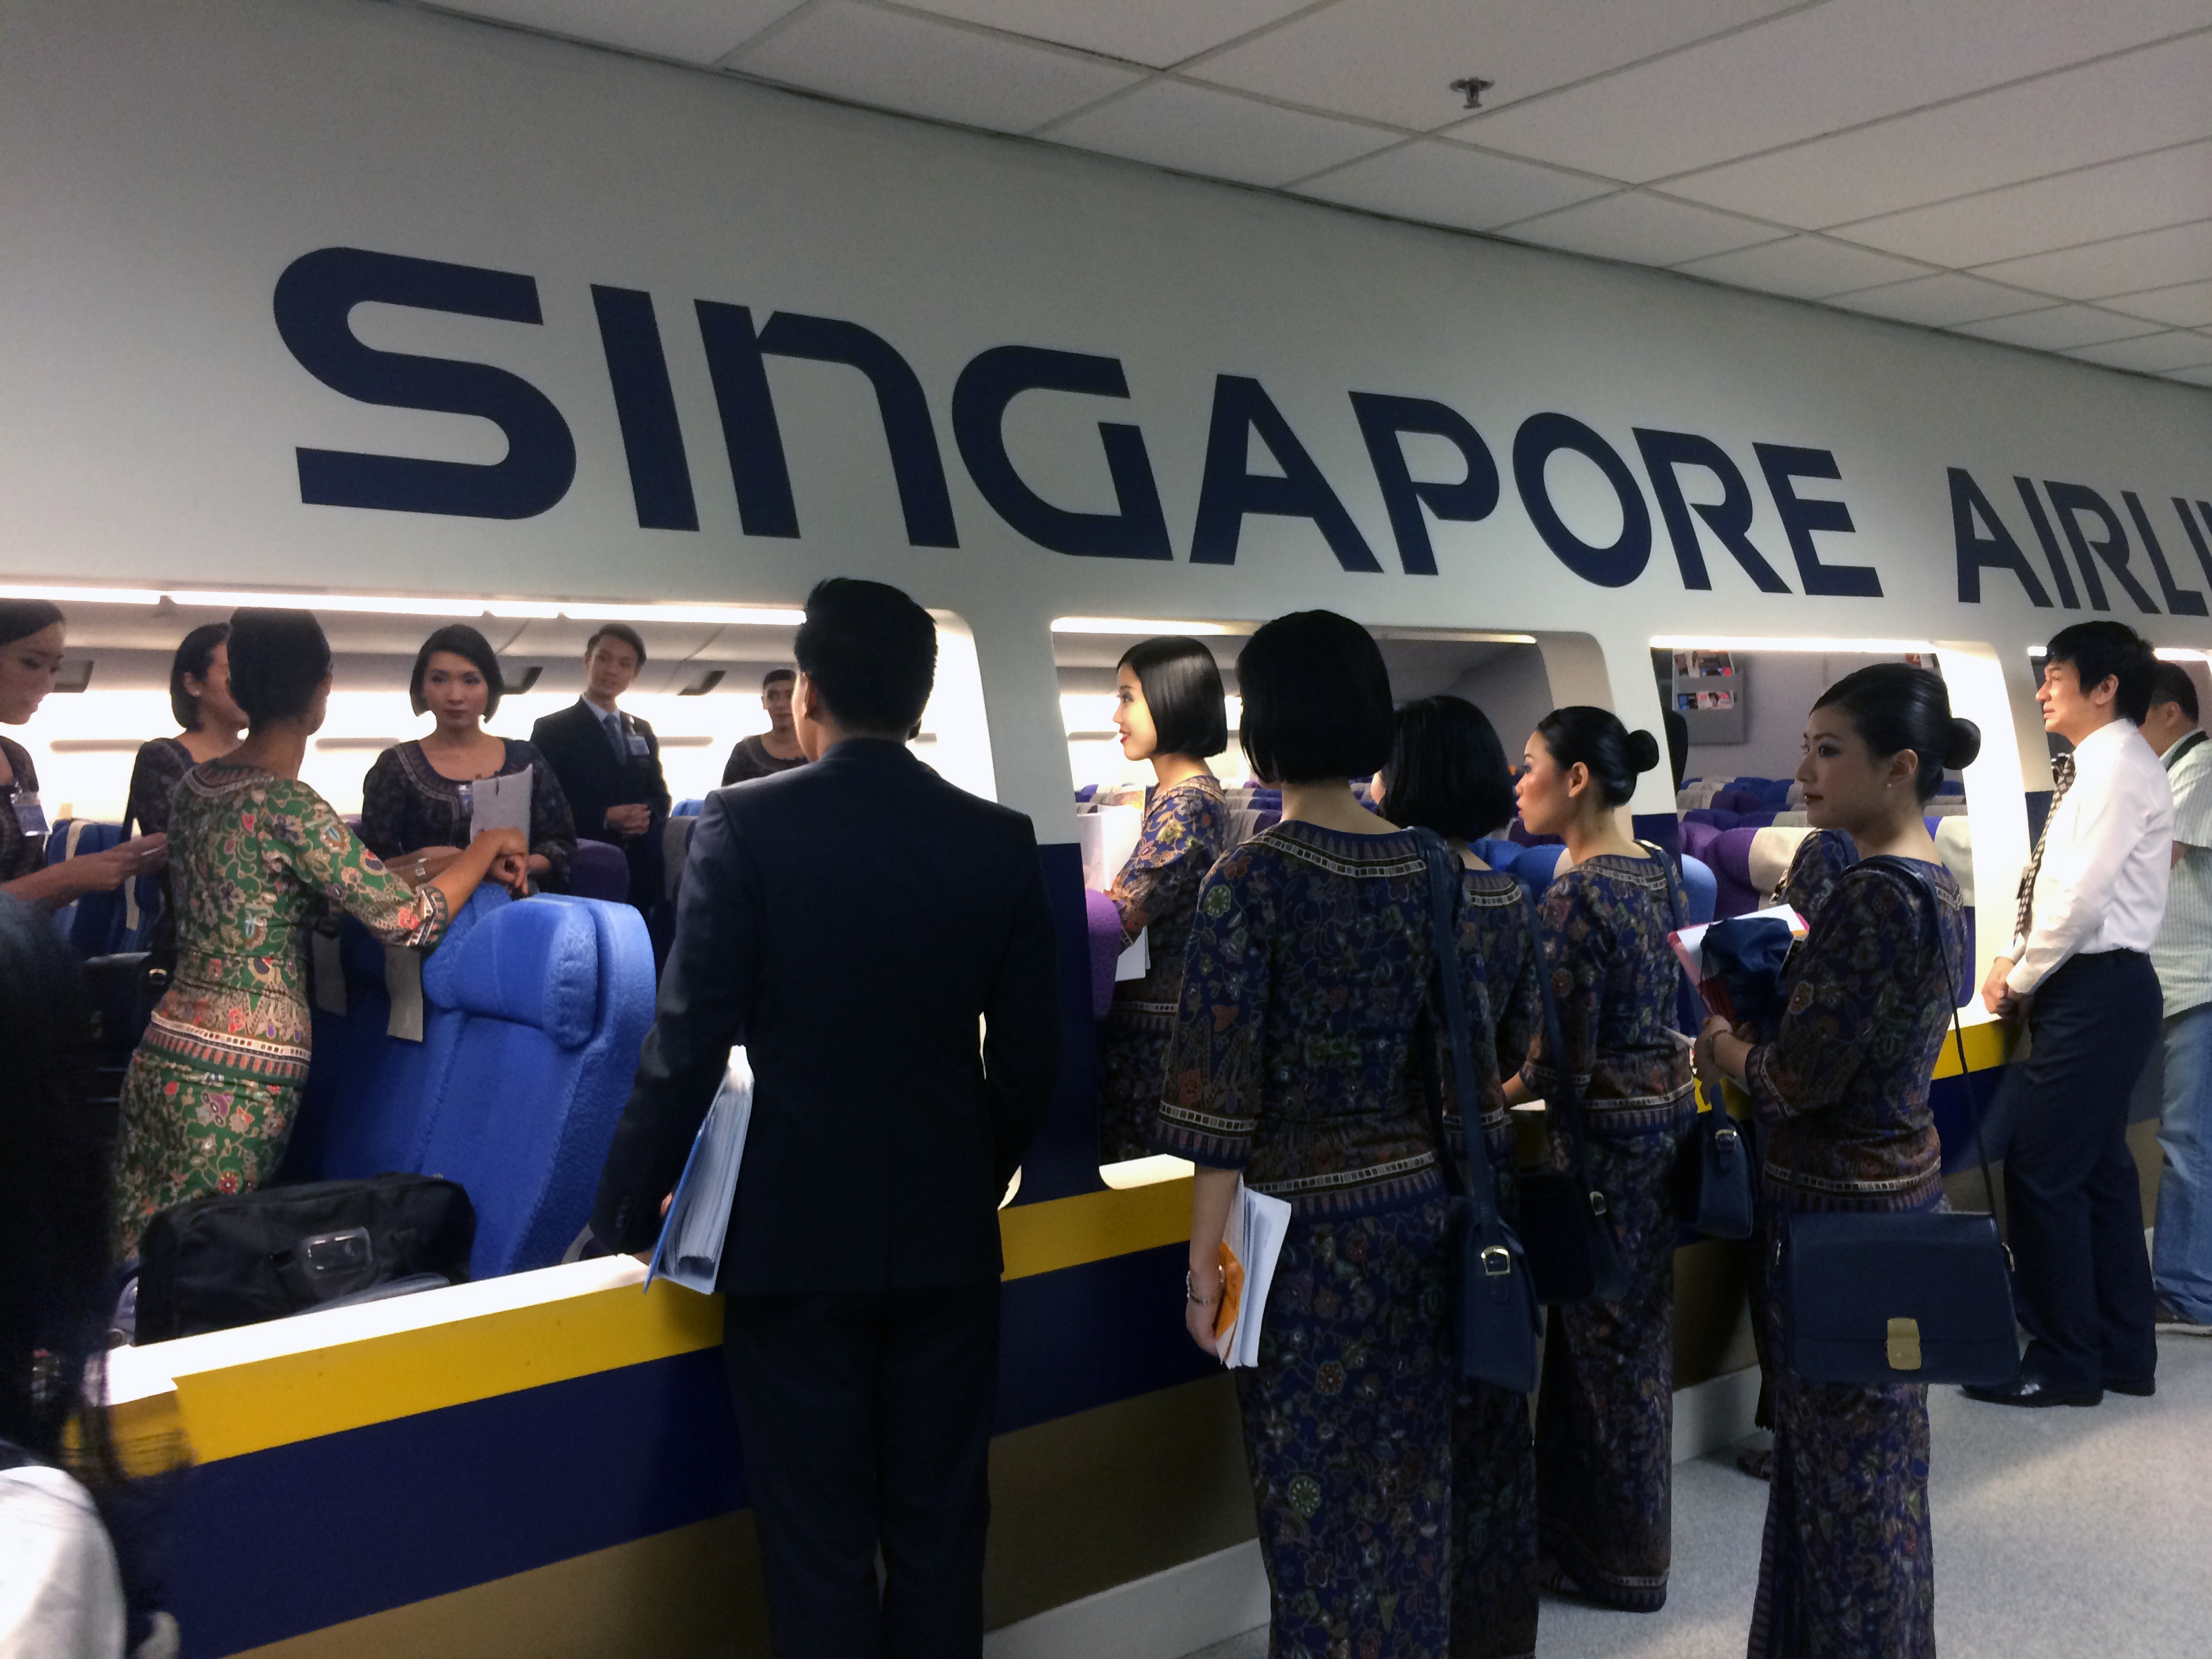 We take you behind the scenes at singapore airlines thedesignair - Singapore airlines office ...